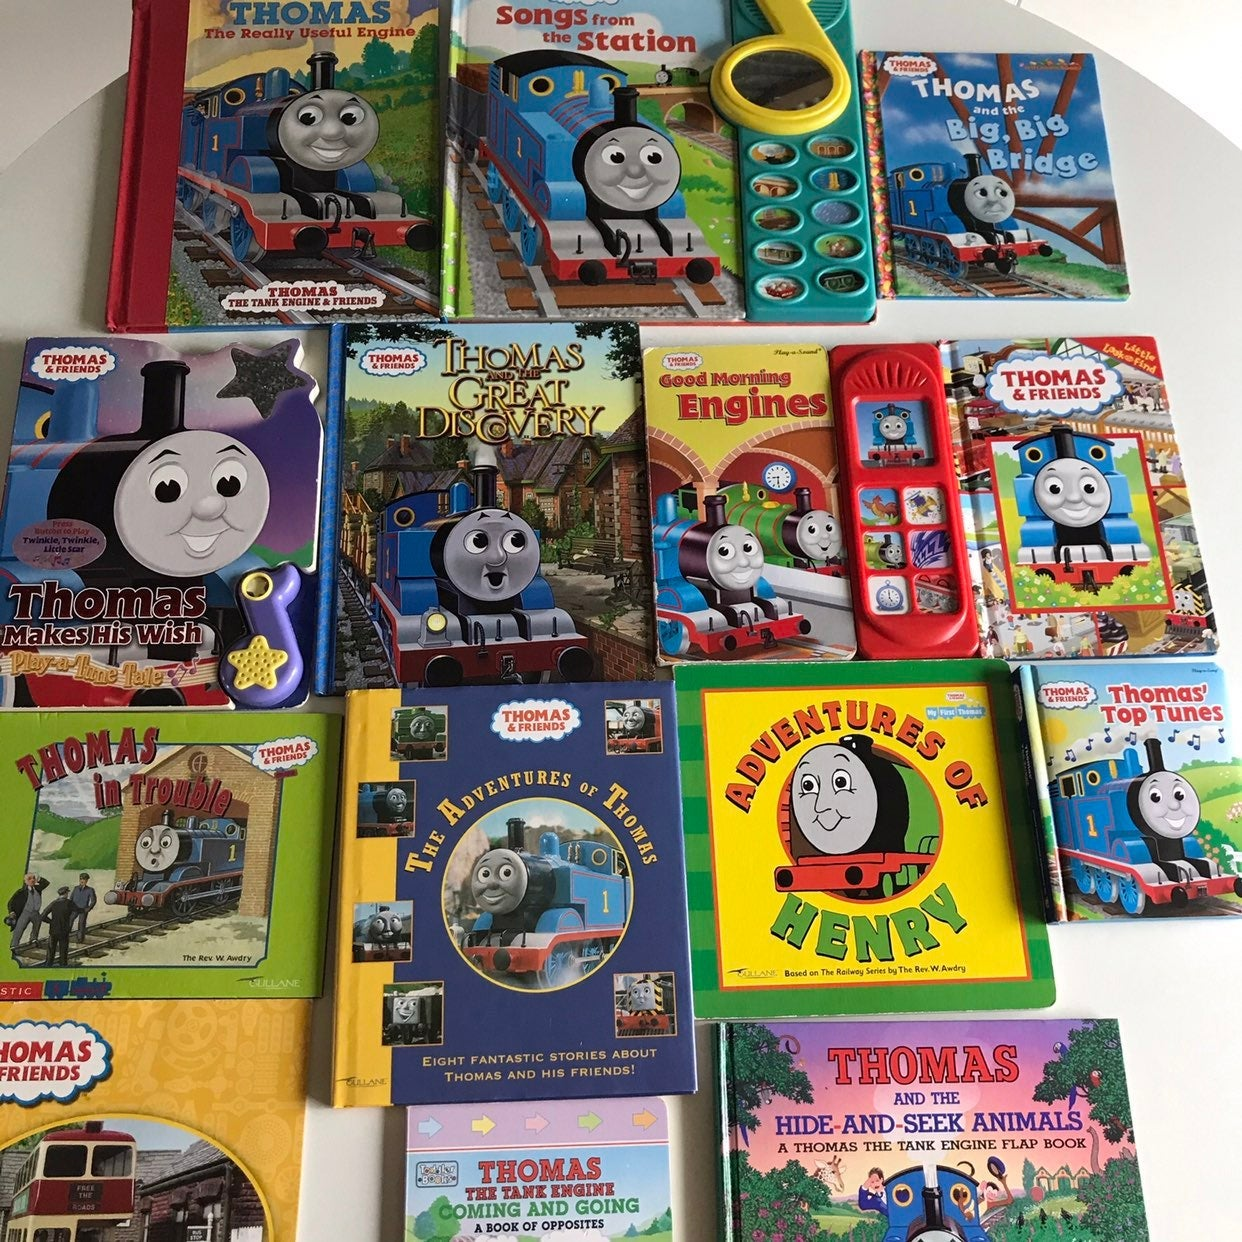 Thomas & Friends Book Library